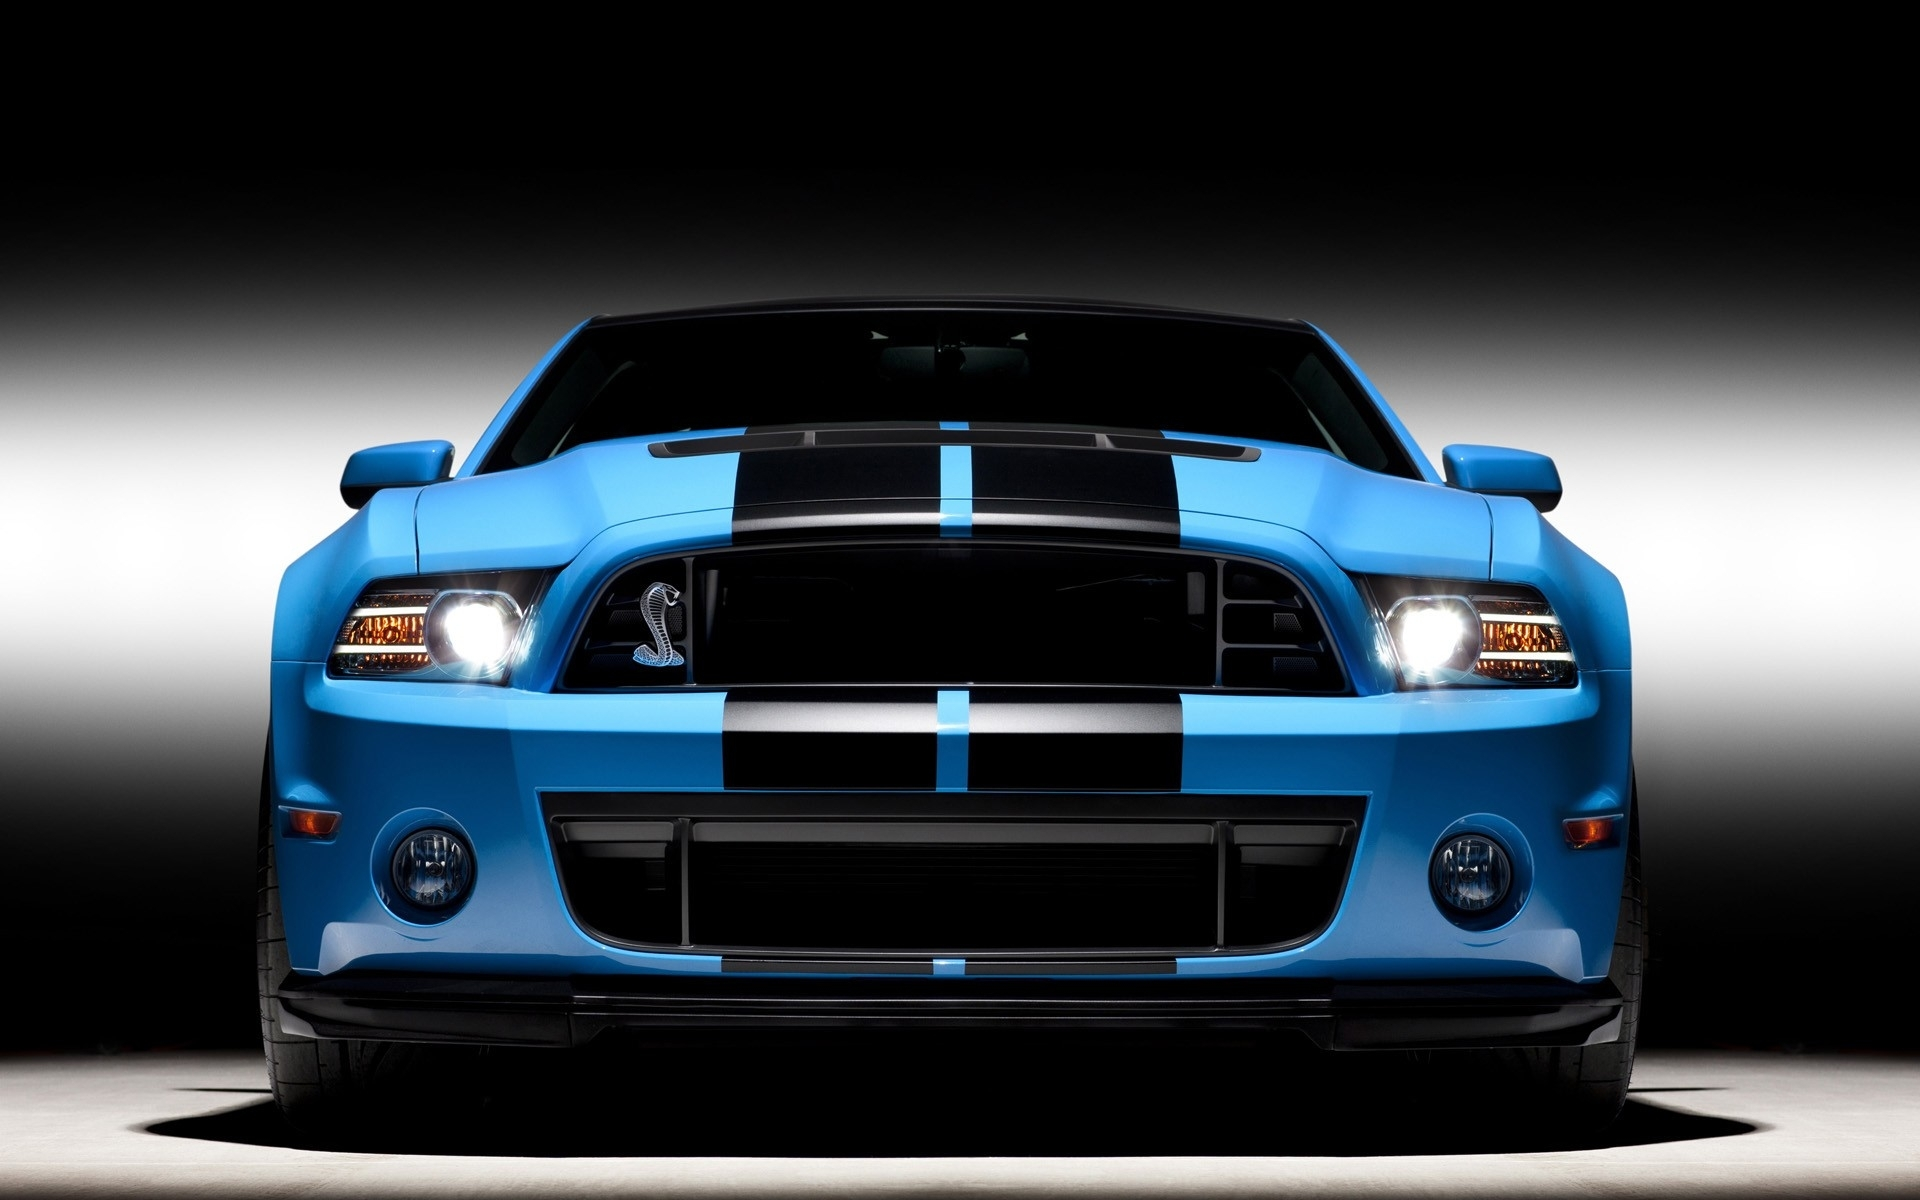 ford mustang shelby gt500 full hd wallpaper and background